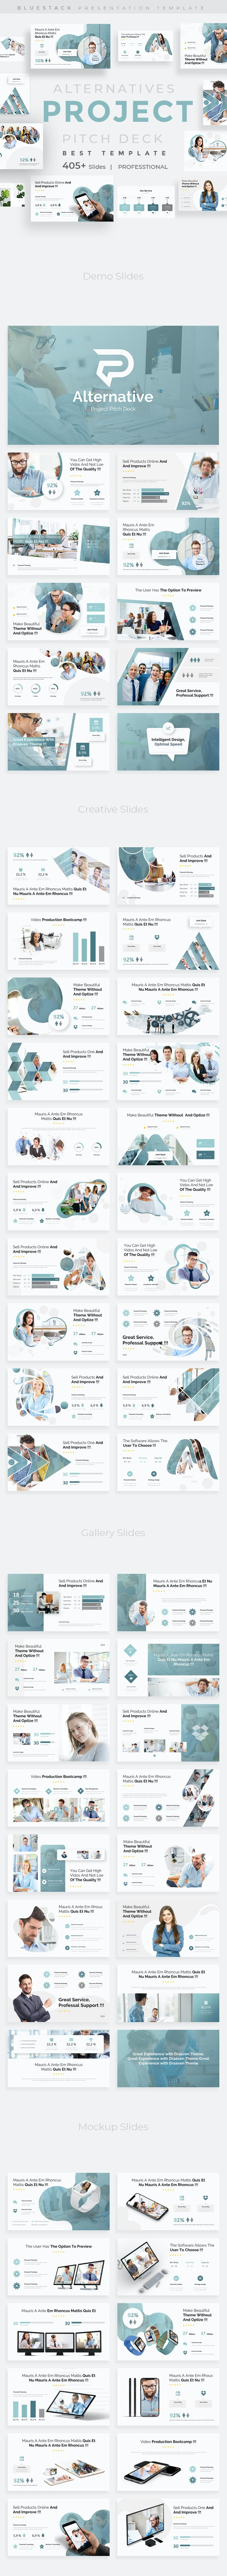 Project Alternatives Pitch Deck Powerpoint Template - Business PowerPoint Templates